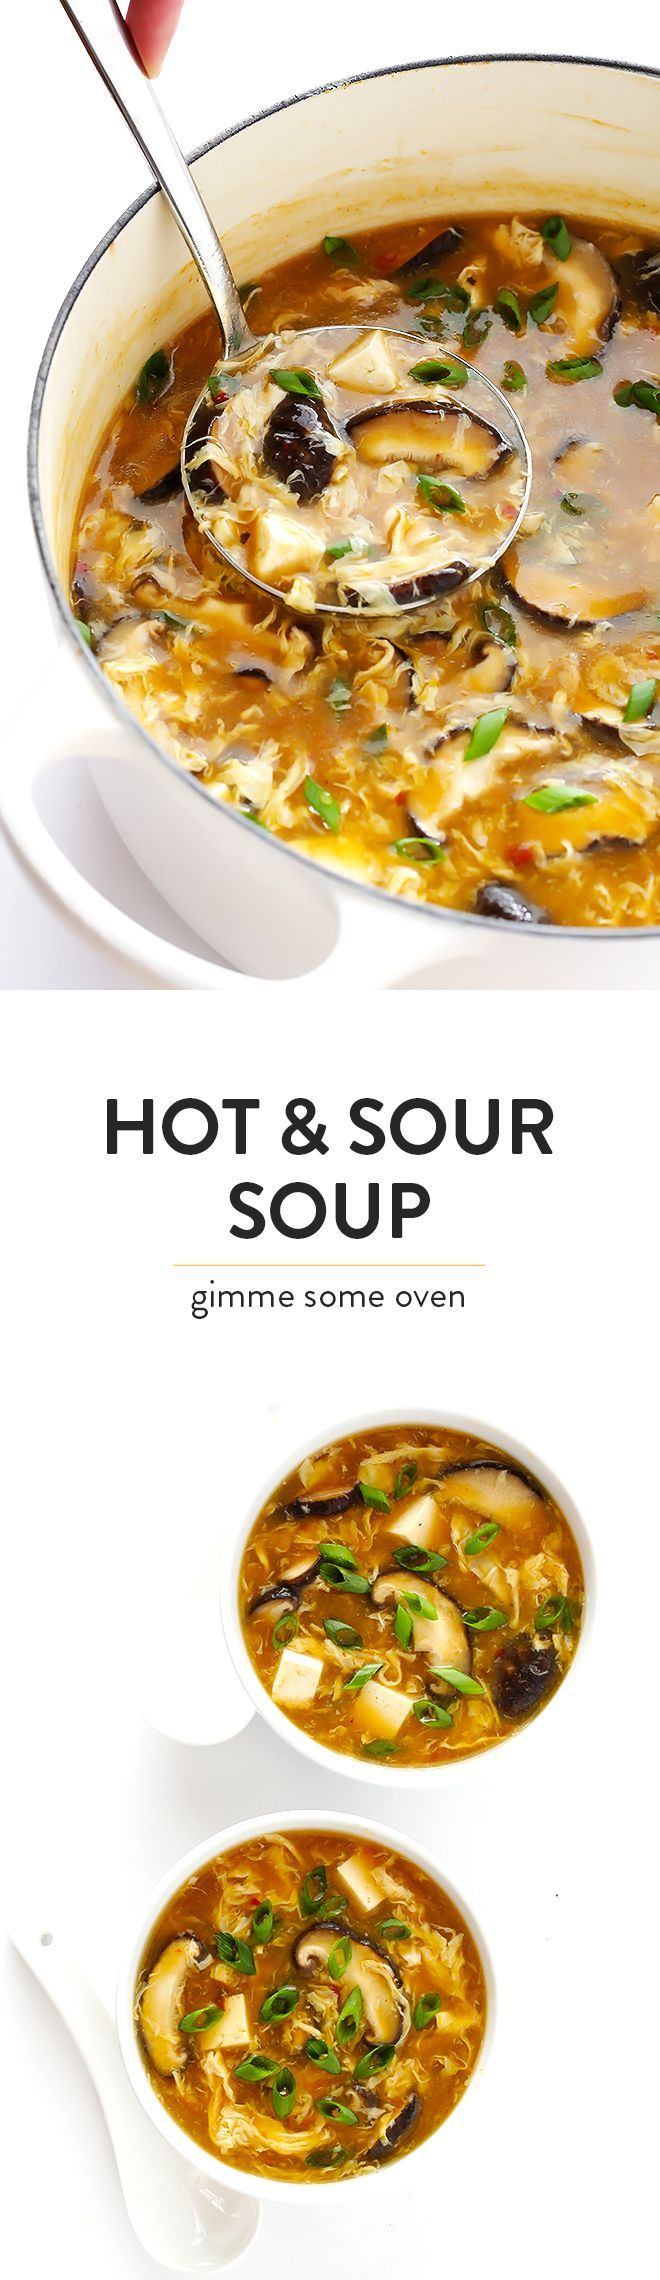 This Hot and Sour Soup recipe is quick and easy to make, SO tasty and flavorful, and tastes just like the Chinese restaurant version!